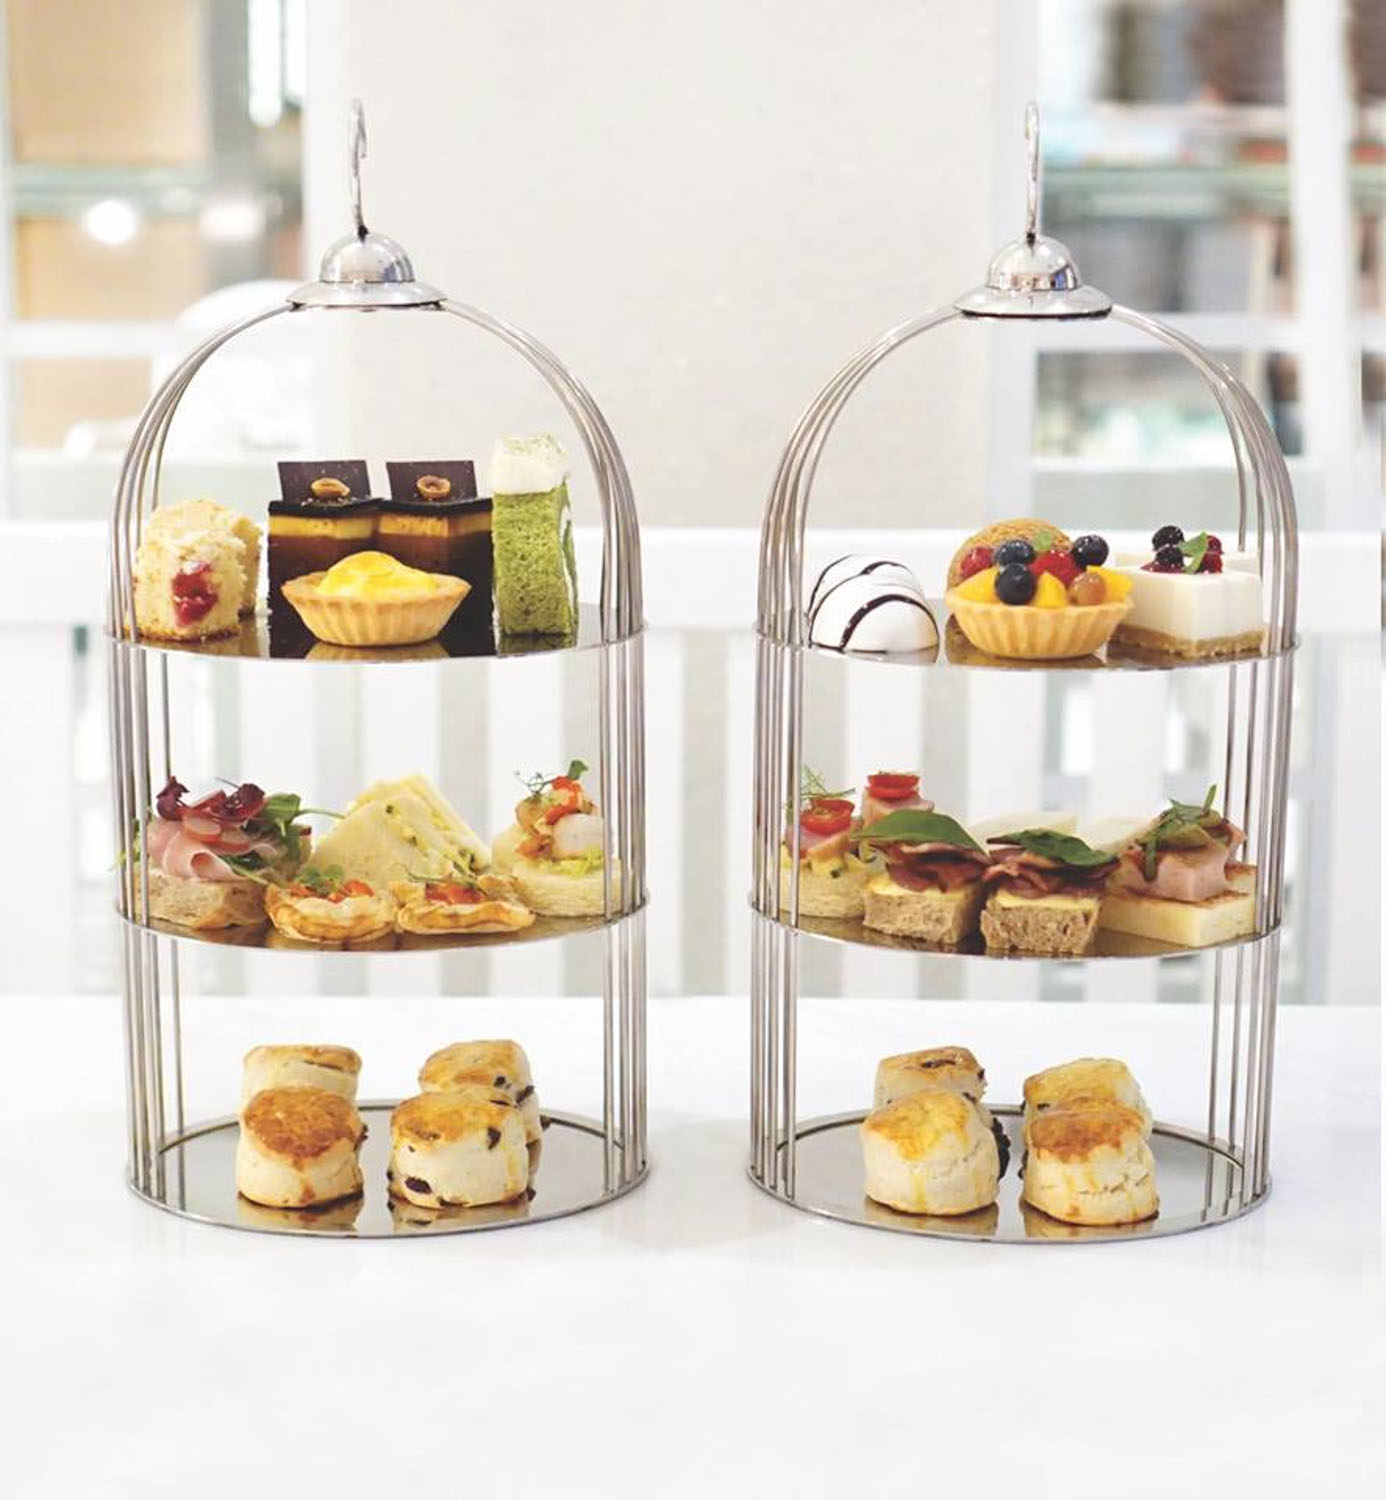 Affordable High Tea - d'Good Cafe